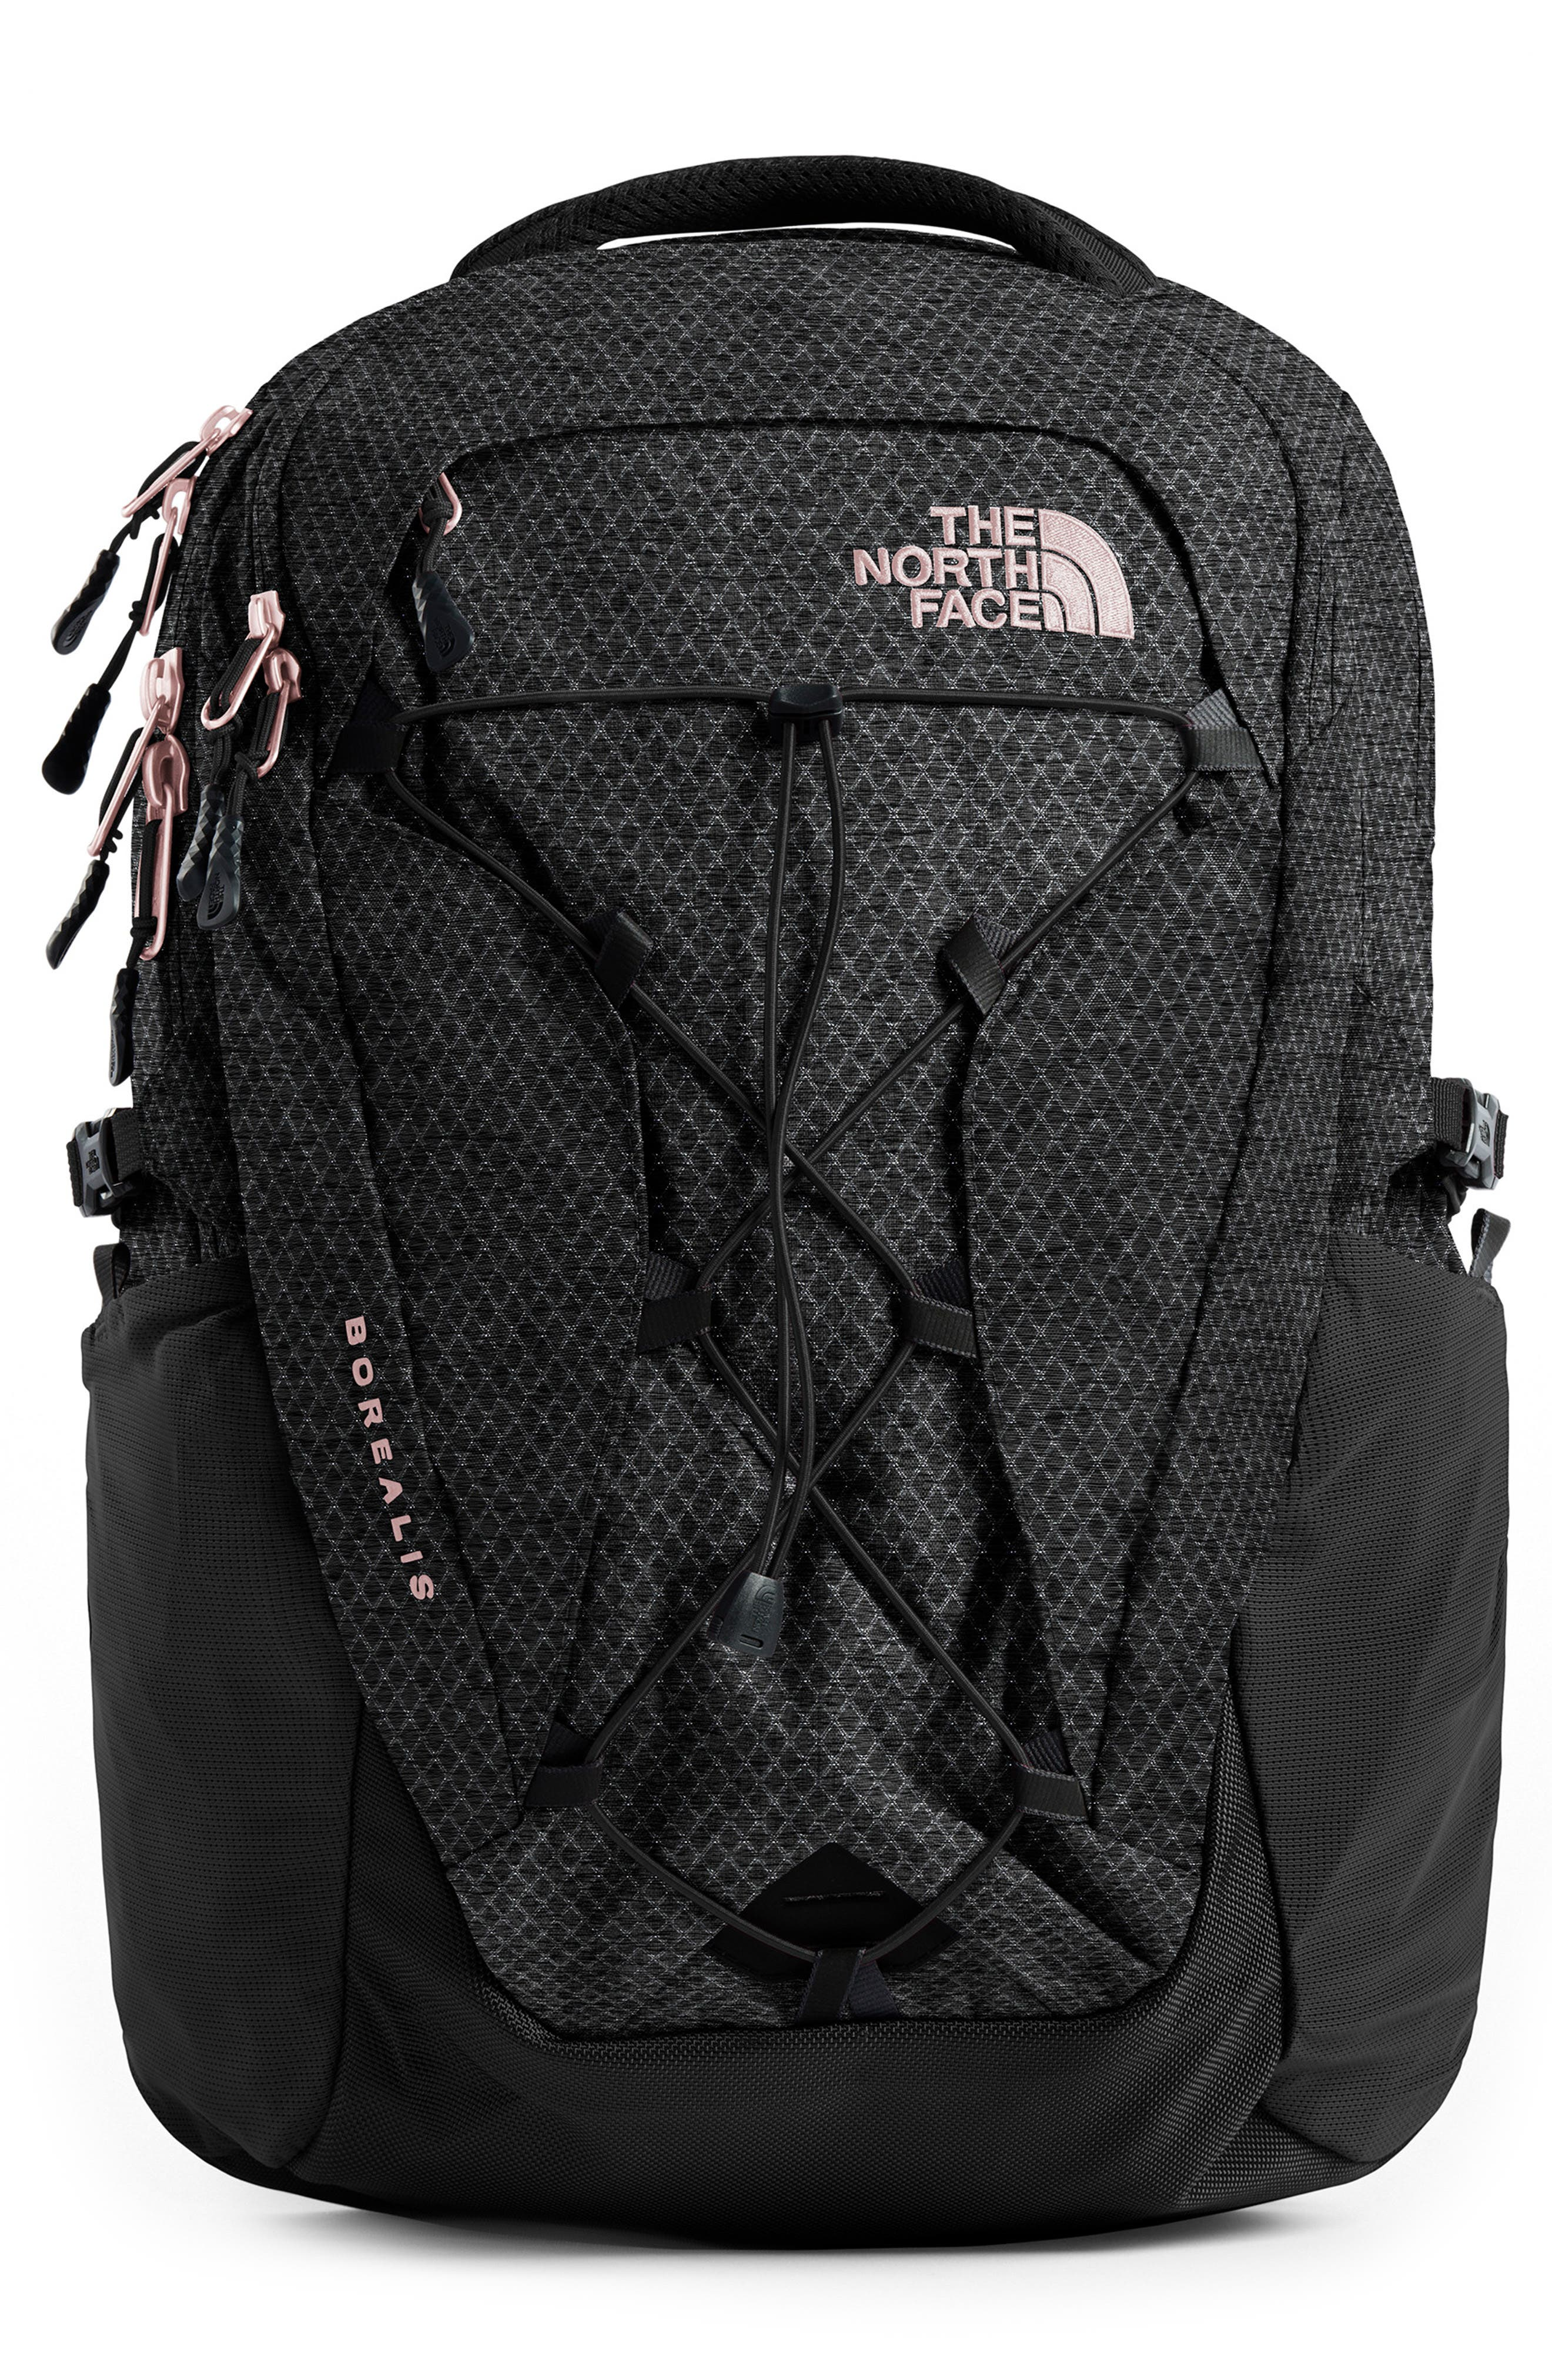 THE NORTH FACE Borealis Backpack, Main, color, TNF BLACK/ BURNT CORAL